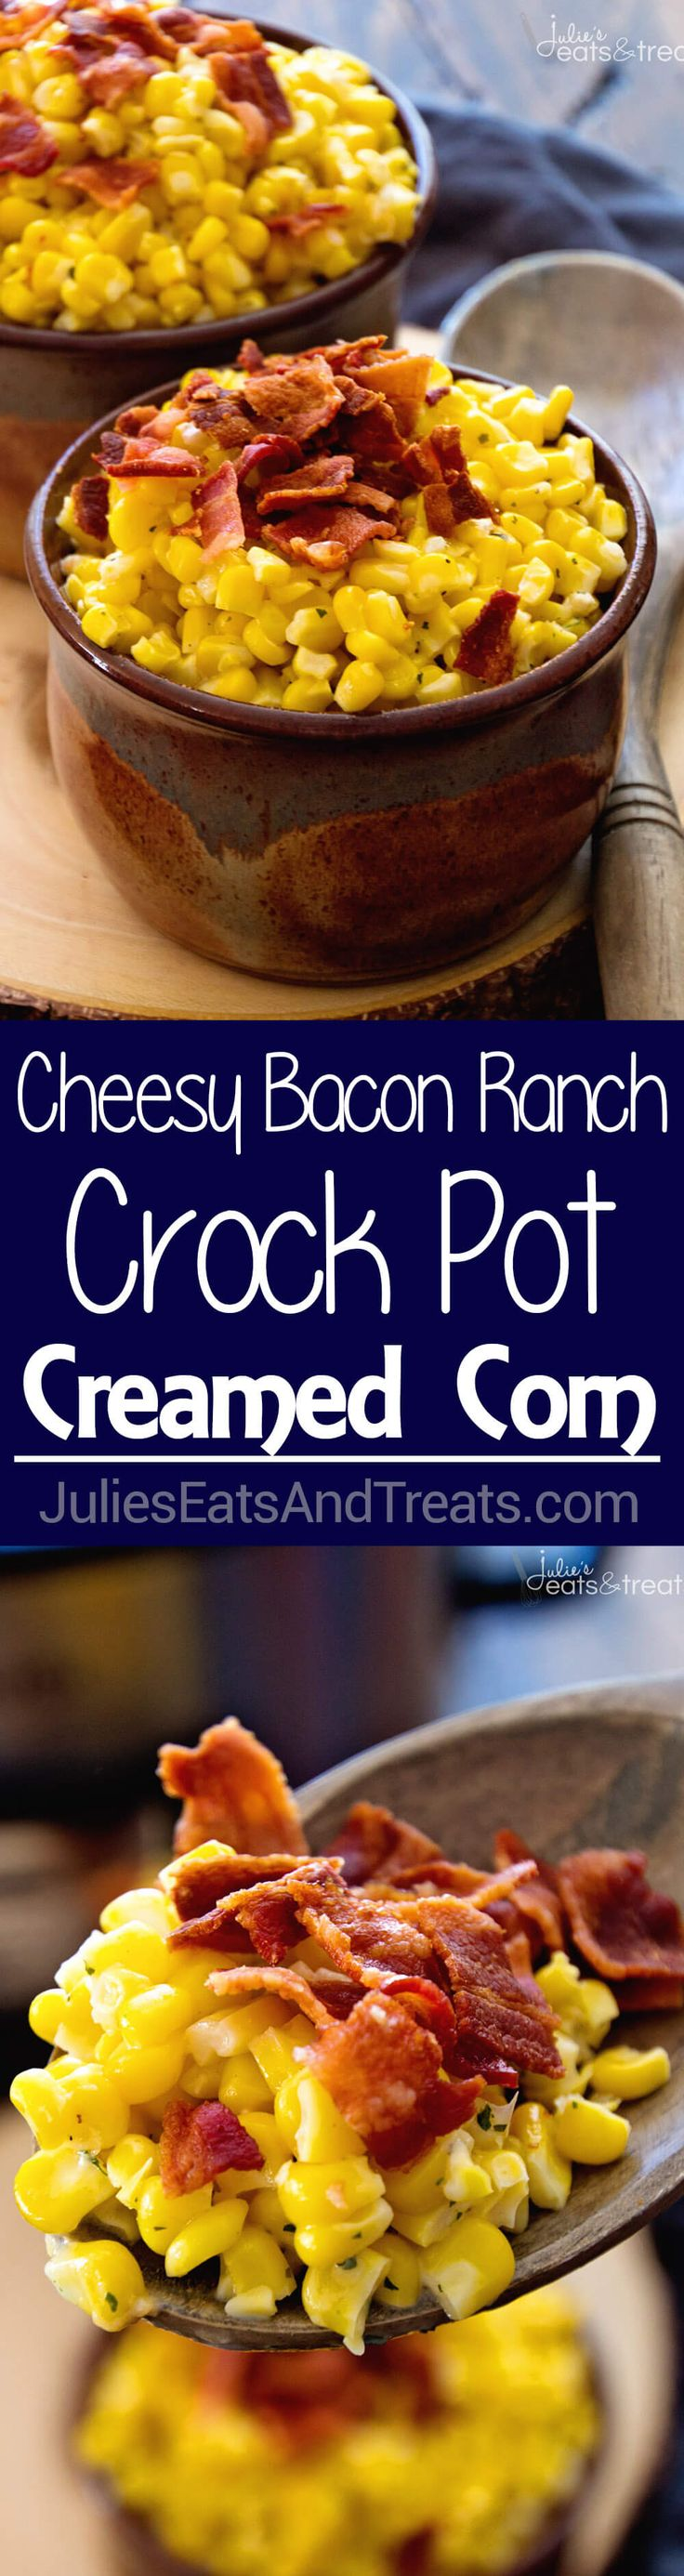 Cheesy Bacon Ranch Crock Pot Creamed Corn Recipe ~ Easy Creamed Corn Recipe full of flavor from Ranch Seasoning, Bacon and Cheese! The Perfect Side Dish for the Holidays or Dinner! ~ http://www.julieseatsandtreats.com